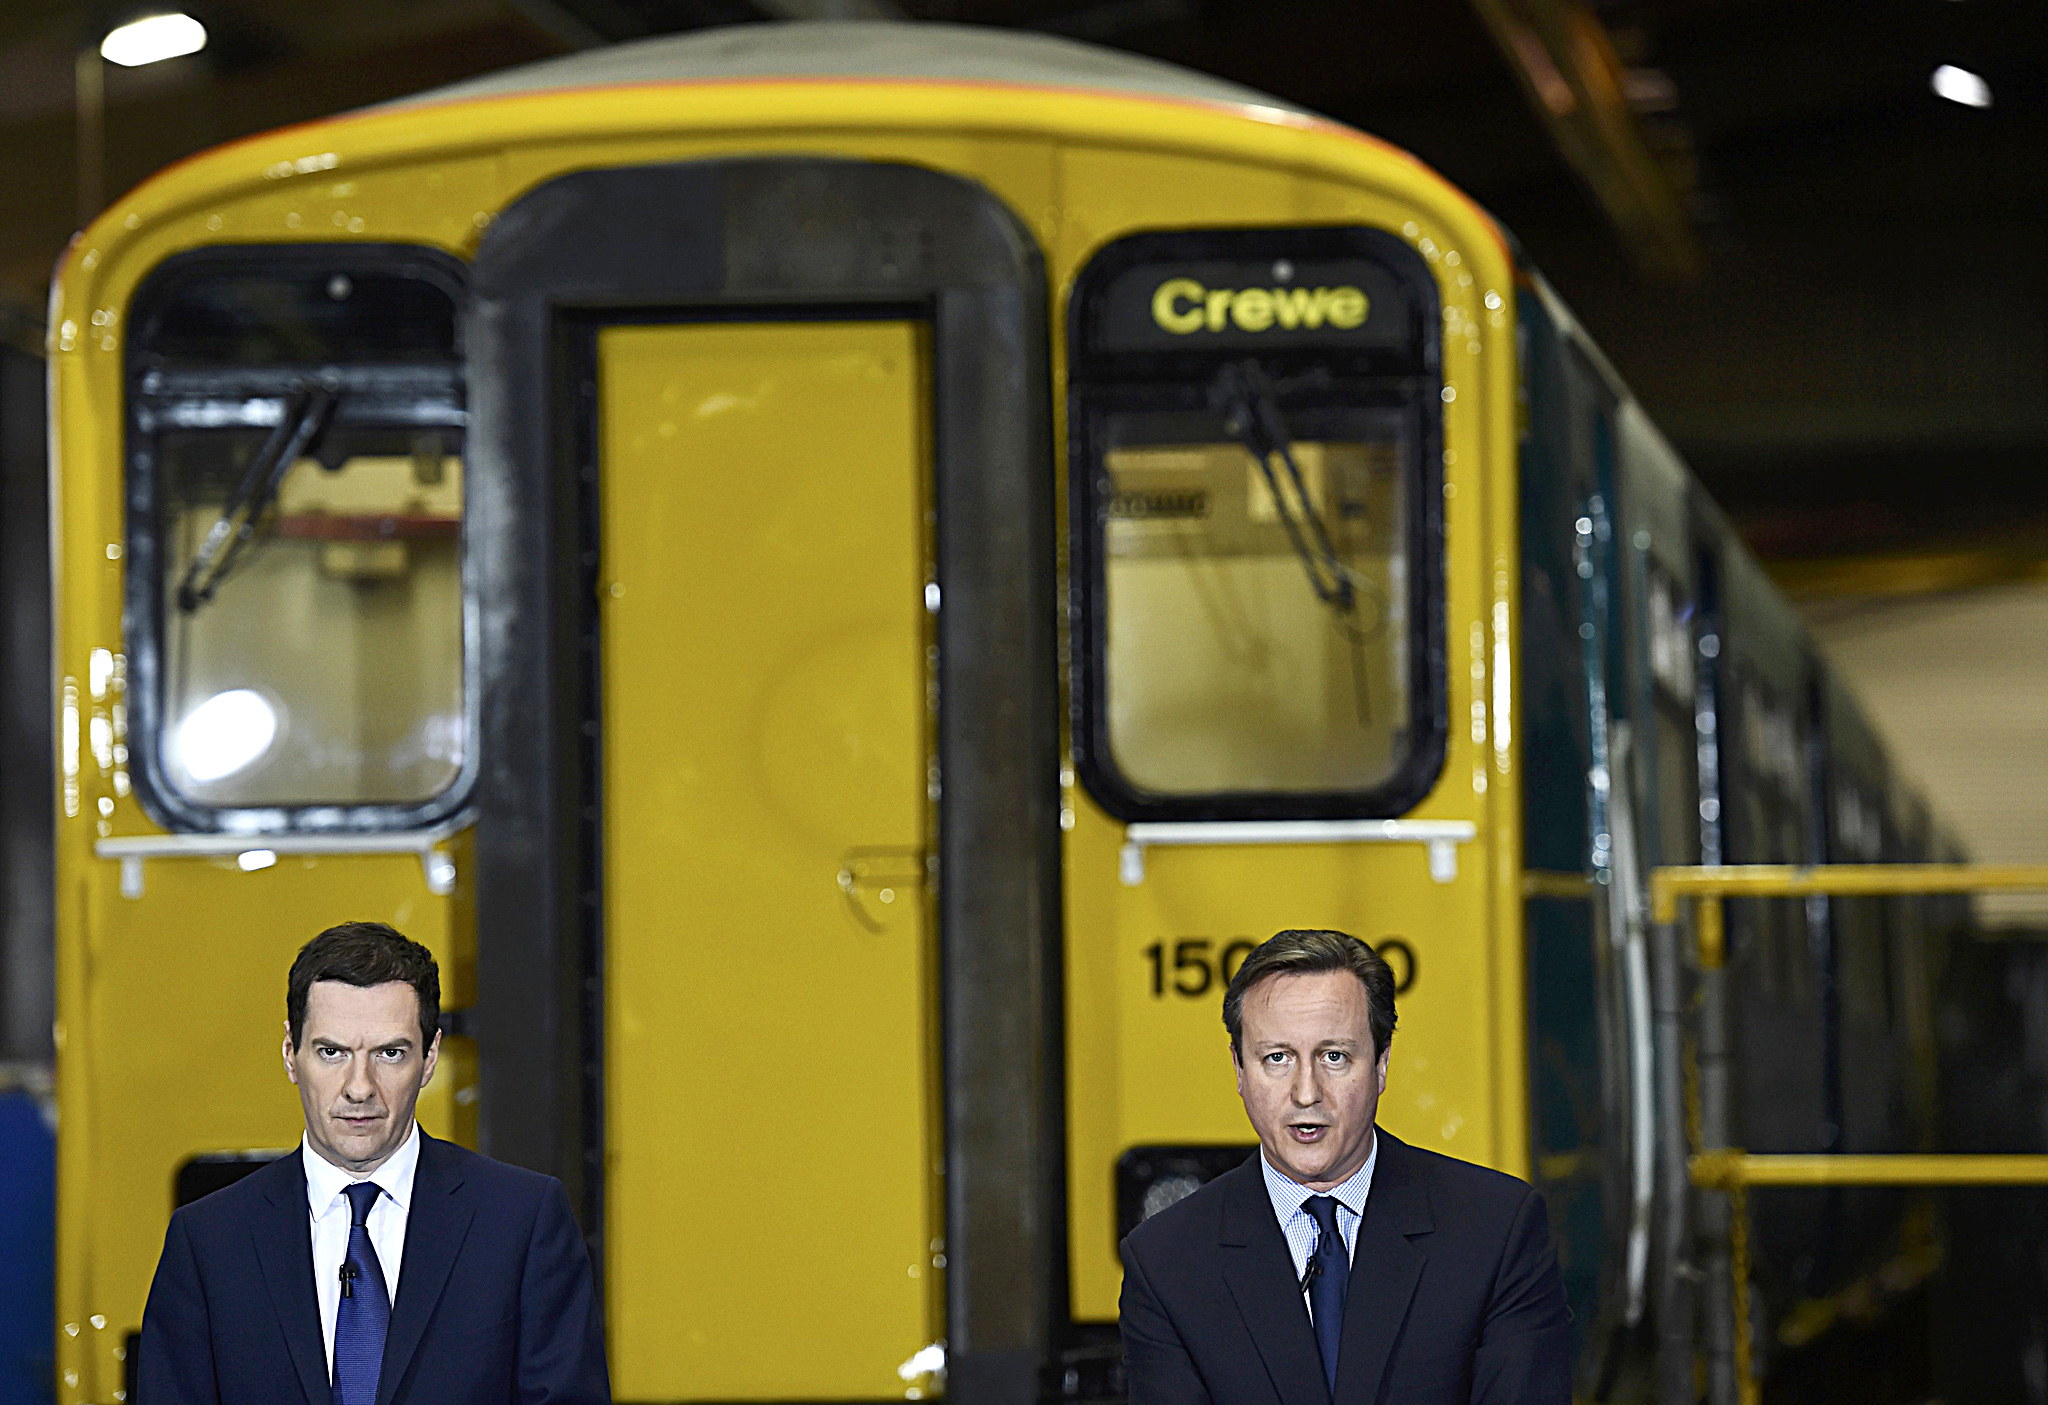 Britain's Prime Minister Cameron delivers a speech with Chancellor of the Exchequer Osborne at Arriva TrainCare in Crewe in northern England...Britain's Prime Minister David Cameron (R) delivers a speech with Chancellor of the Exchequer George Osborne during a campaign stop at Arriva TrainCare in Crewe in northern England, April 20, 2015. REUTERS/Toby Melville